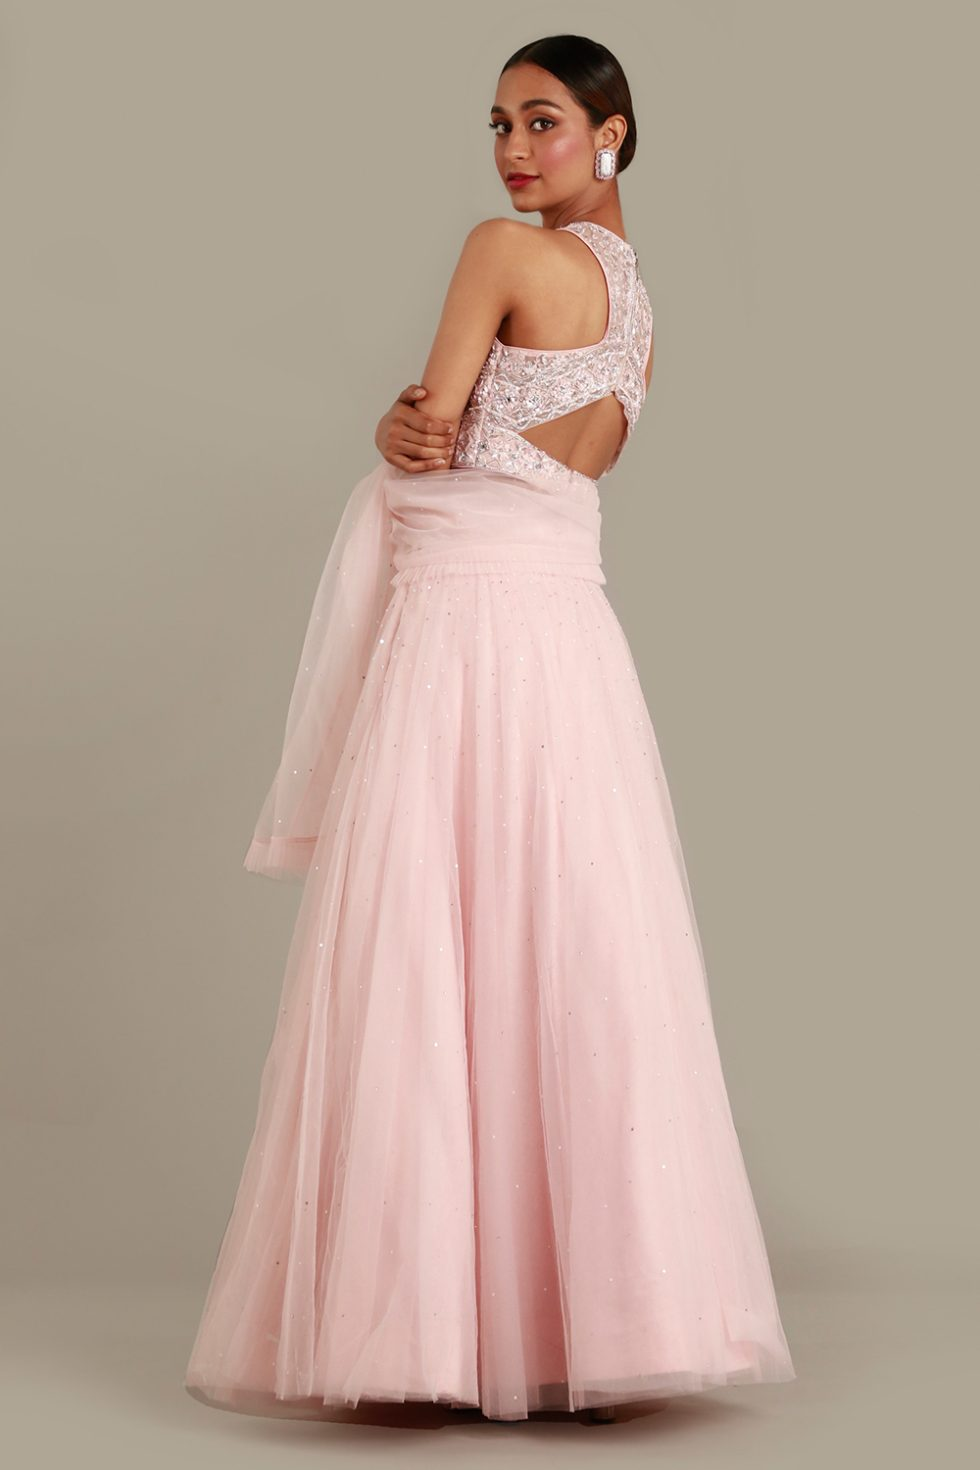 Petal pink tulle lehenga set with matching frill dupatta and embroidered blouse